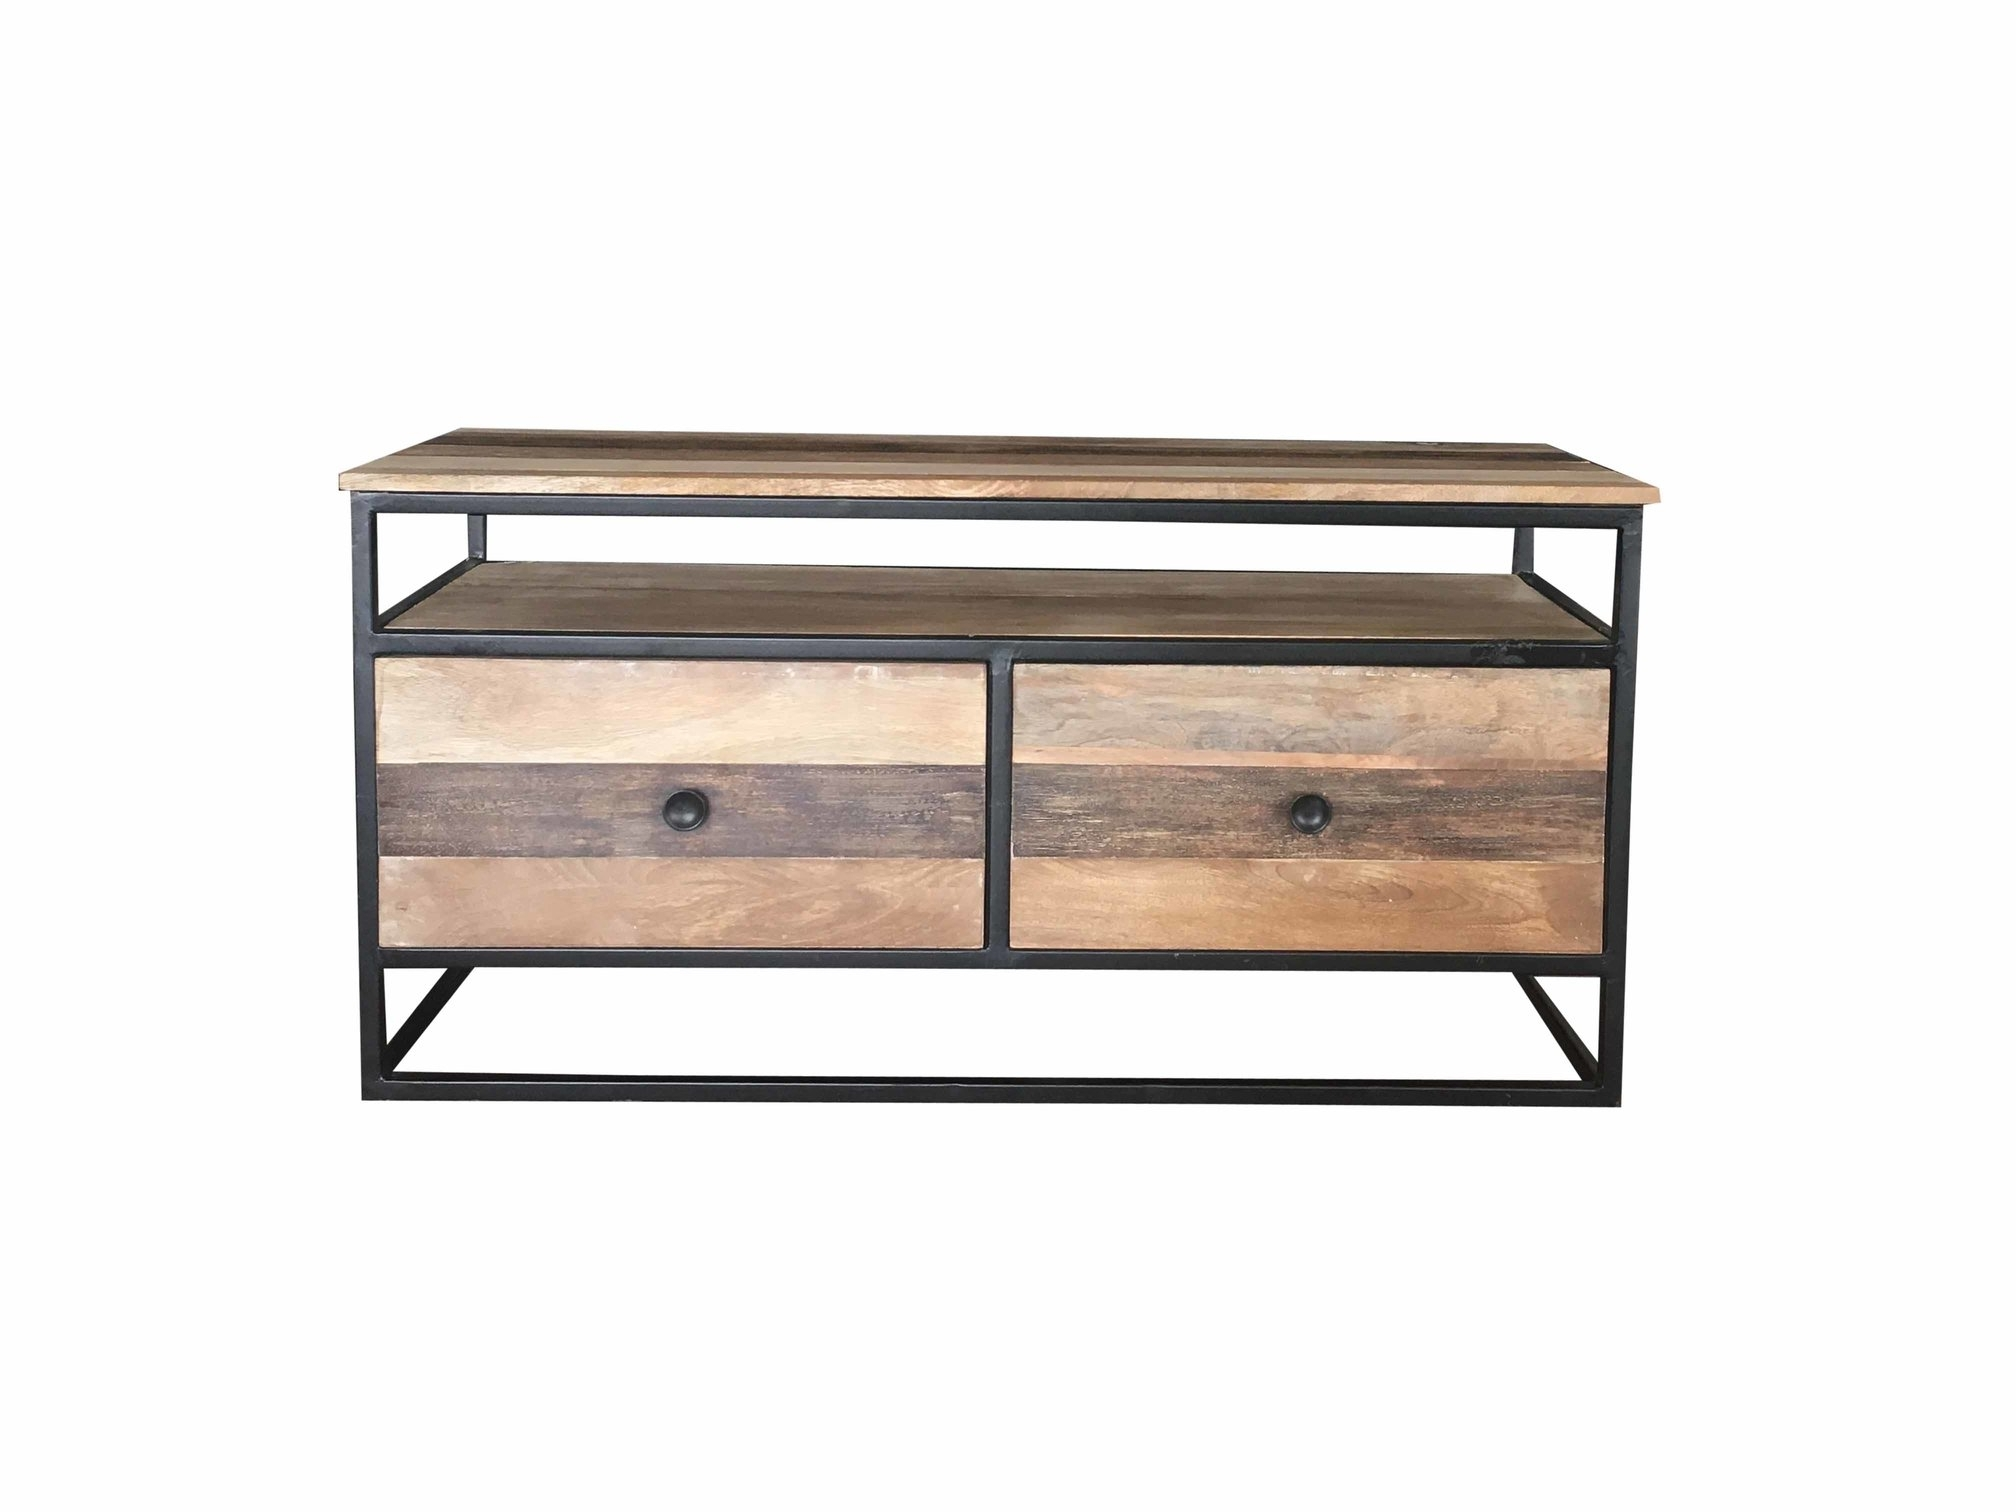 Industrial Reclaimed Mango Wood Tv Stand/media Unit/coffee Table Inside Metal Framed Reclaimed Wood Sideboards (View 17 of 30)